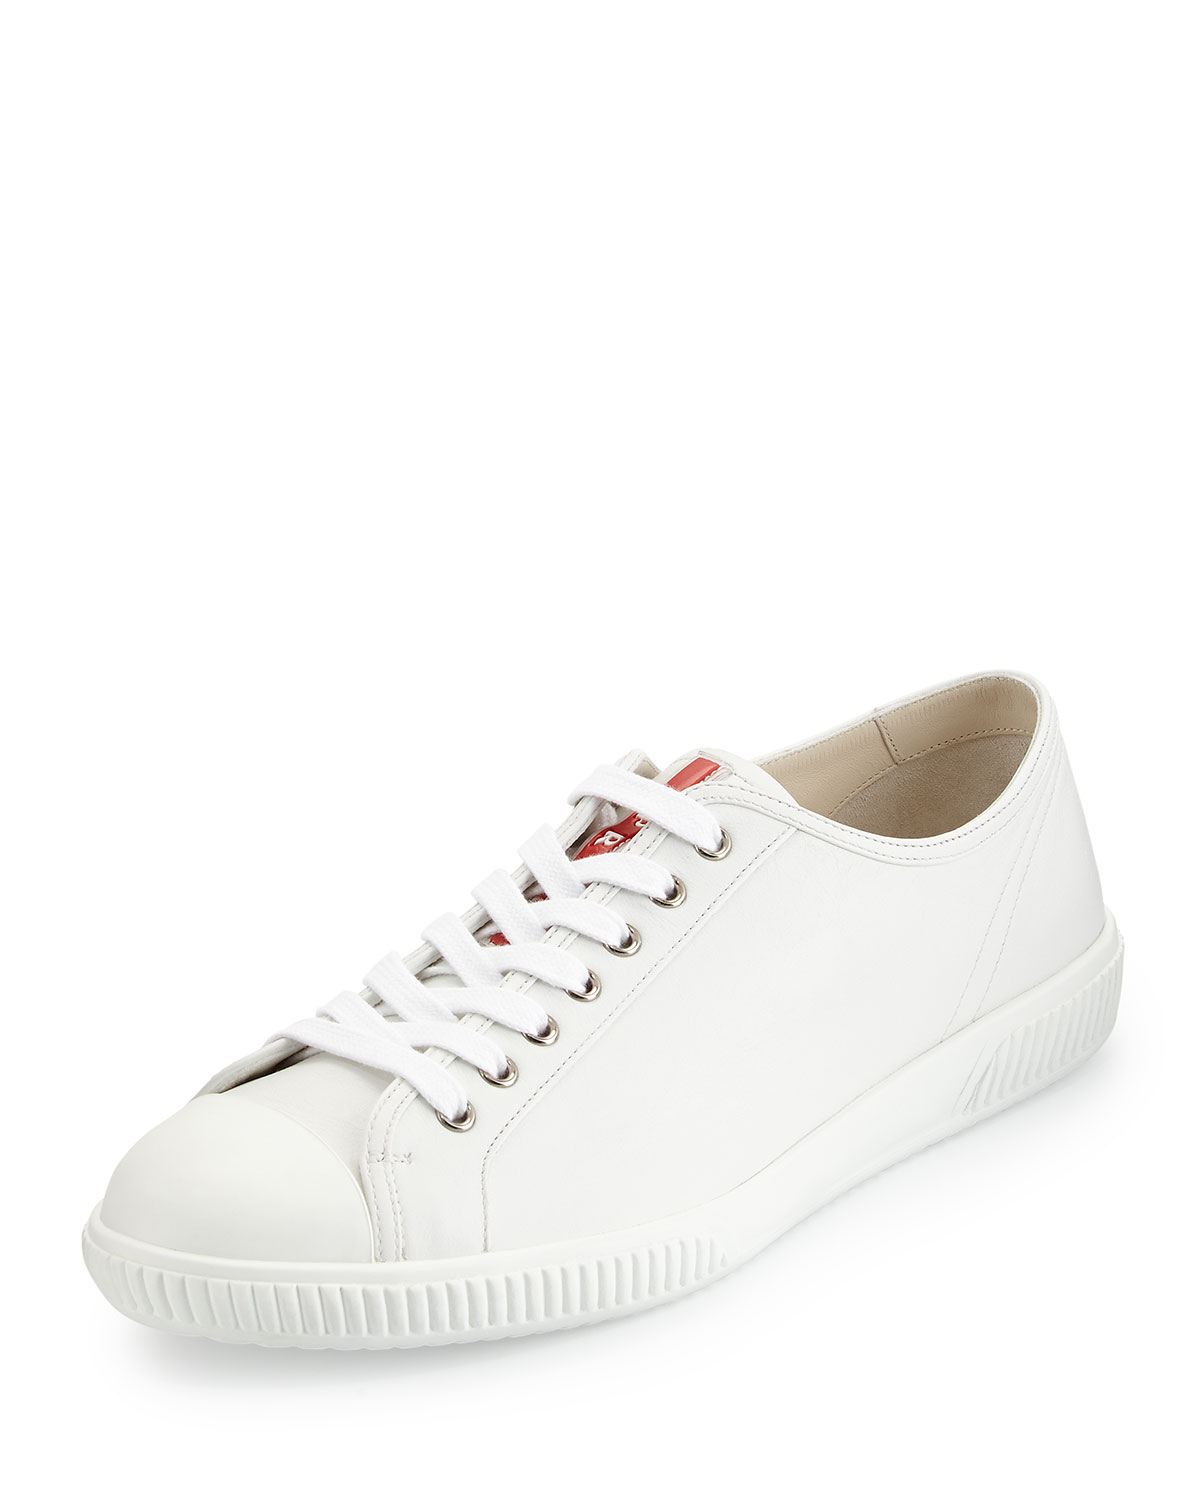 e233b003 ... sweden lyst prada cap toe low top sneaker in white for men d460f fdb66